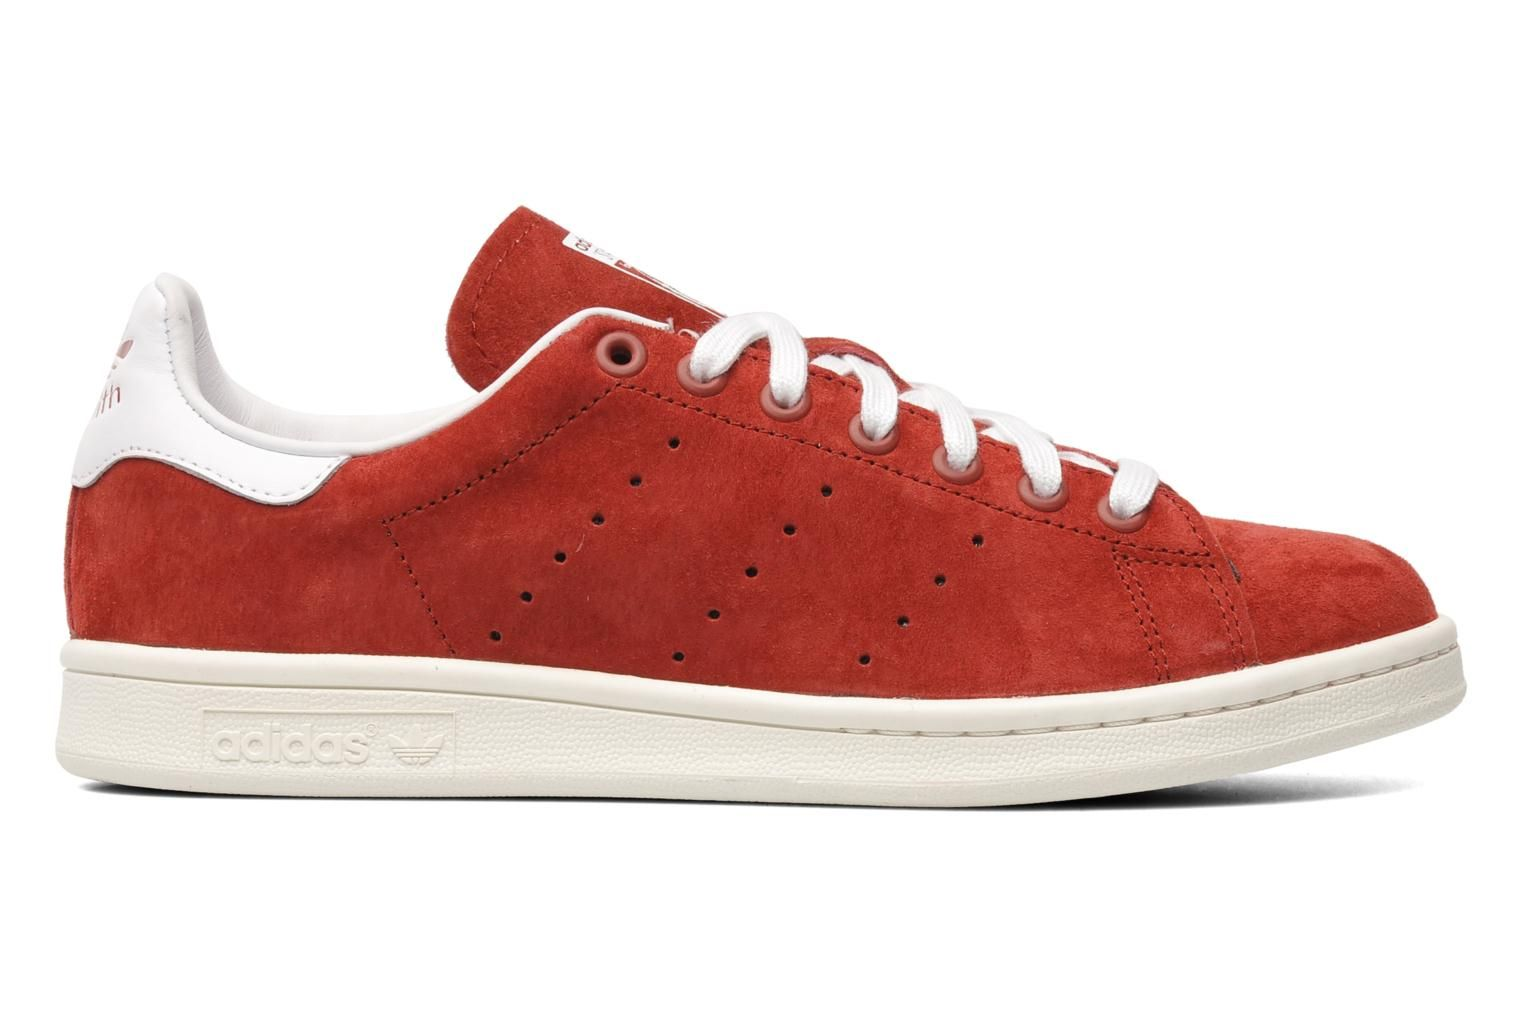 le dernier 63dce 6f137 Stan Smith | timeless classic styles for men | Adidas ...